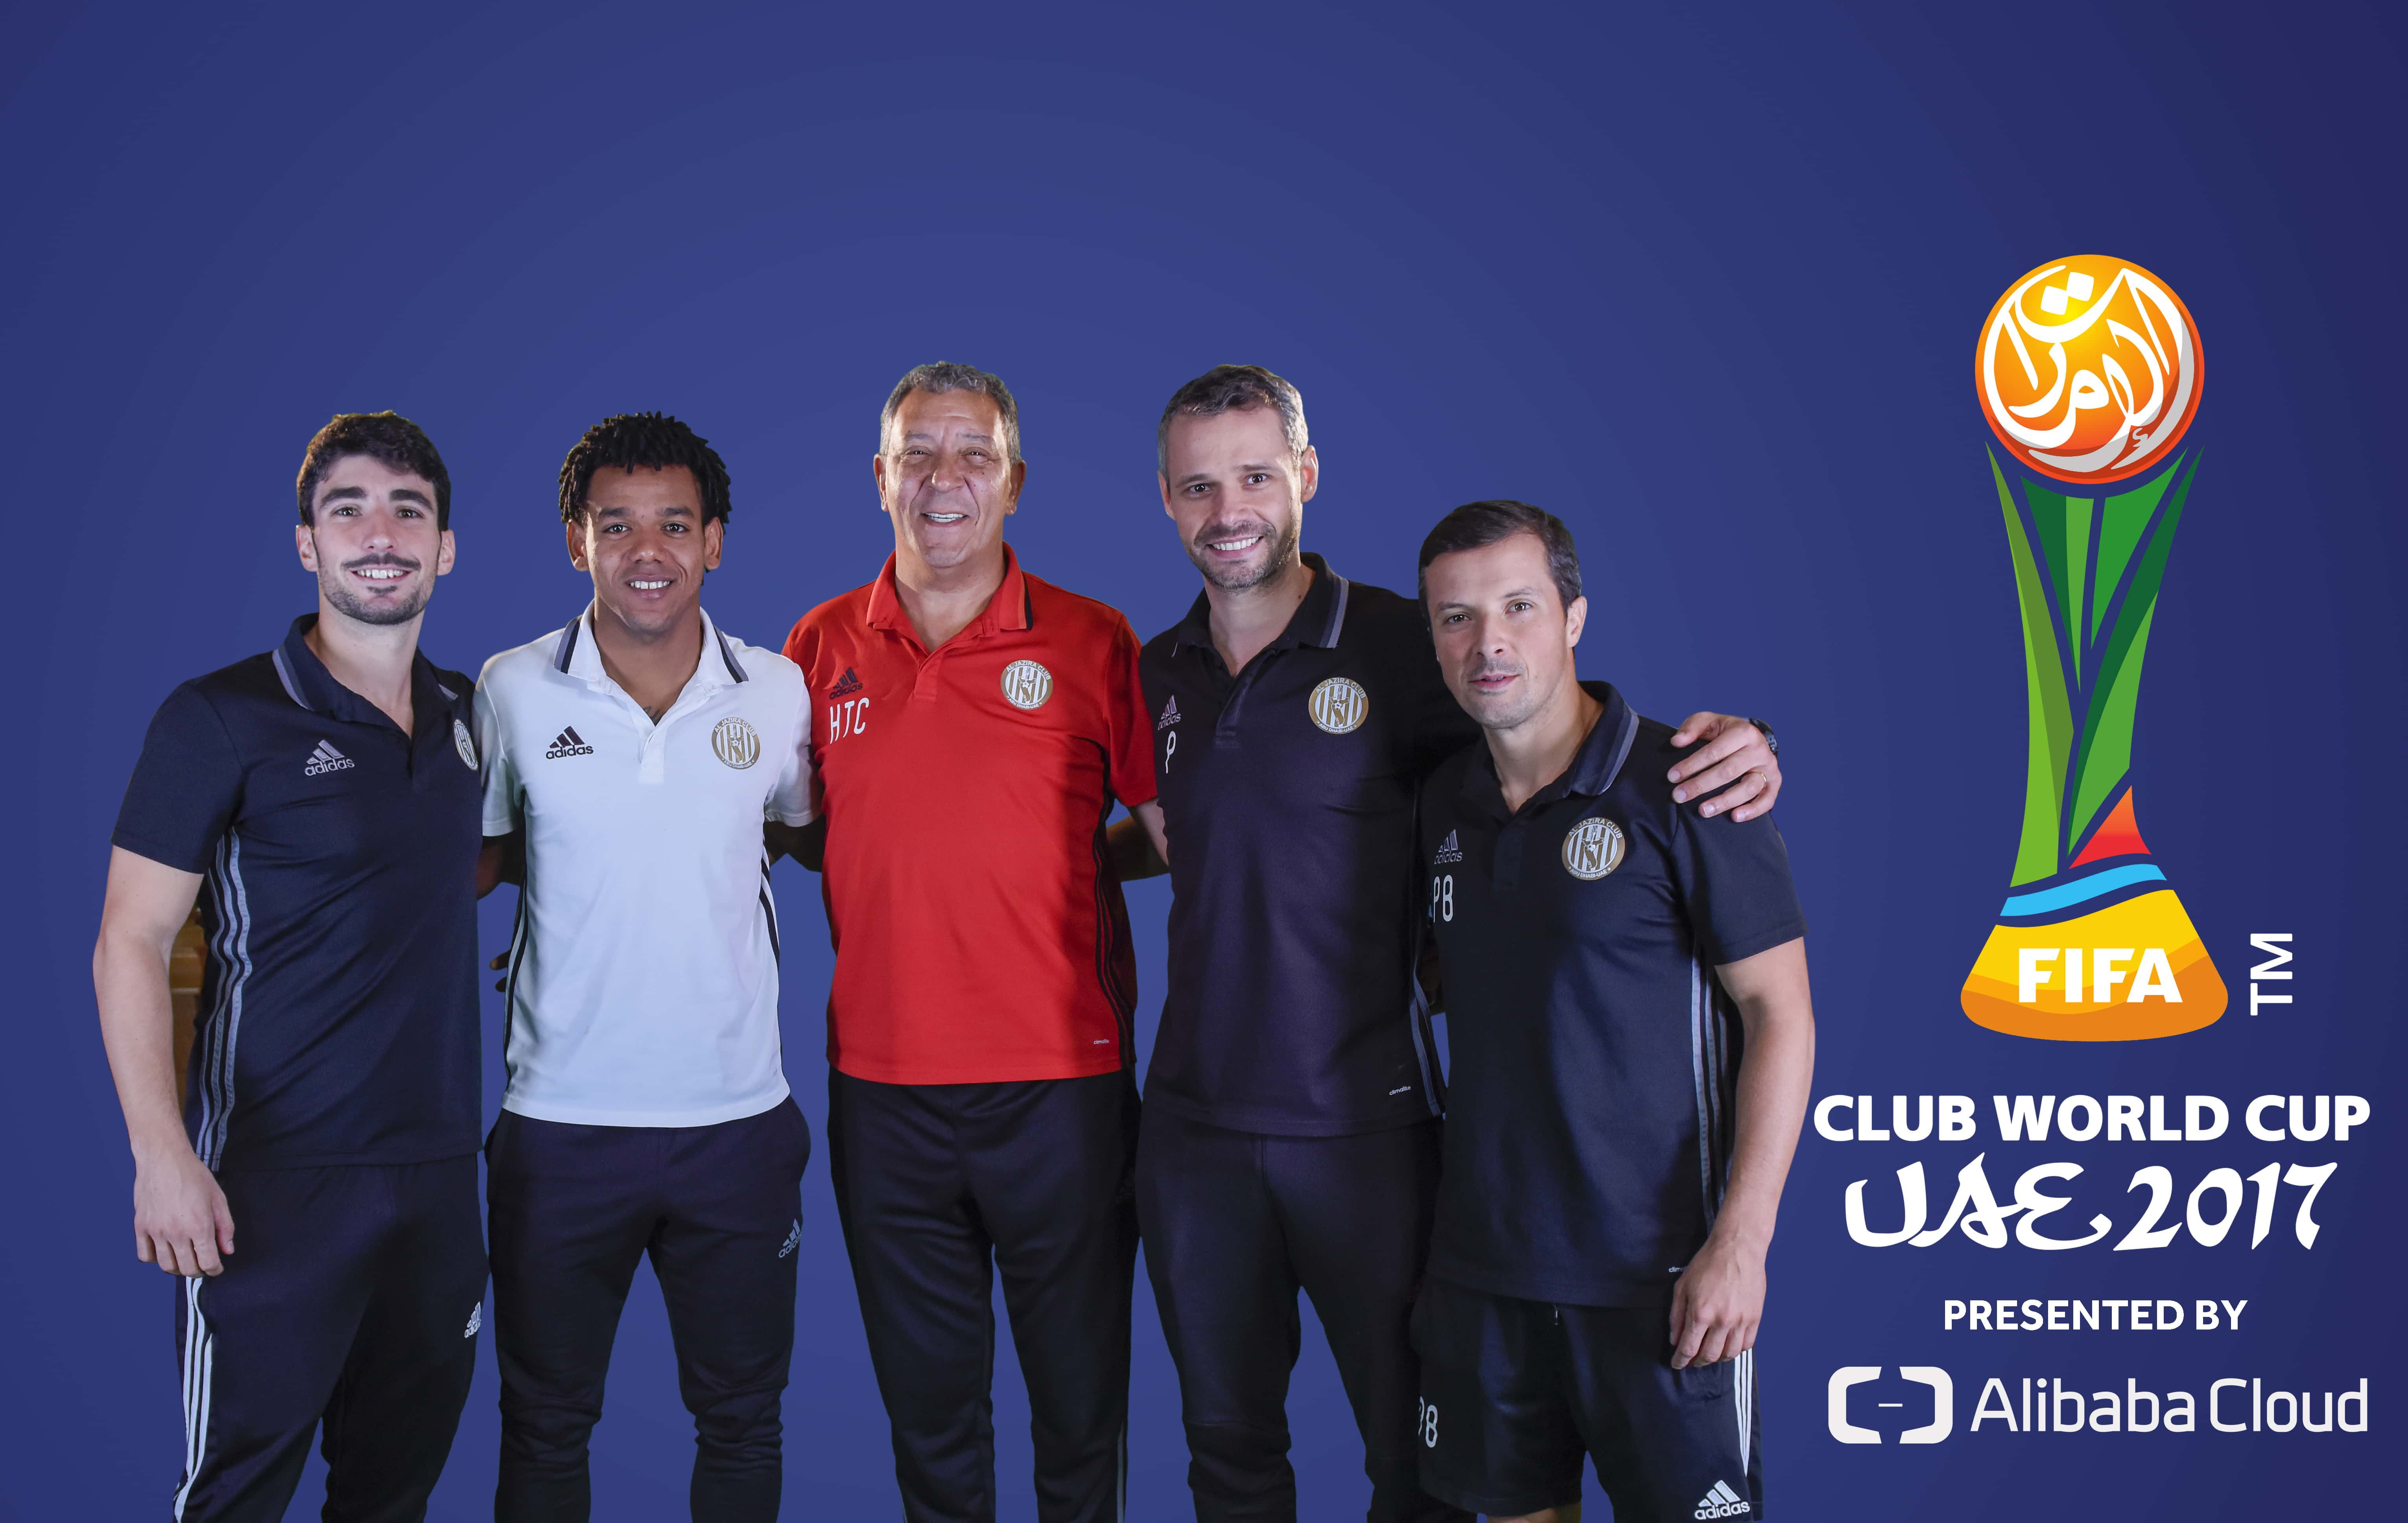 Football Medicine®️ with the head coach Henk Ten Cate and player Romarinho